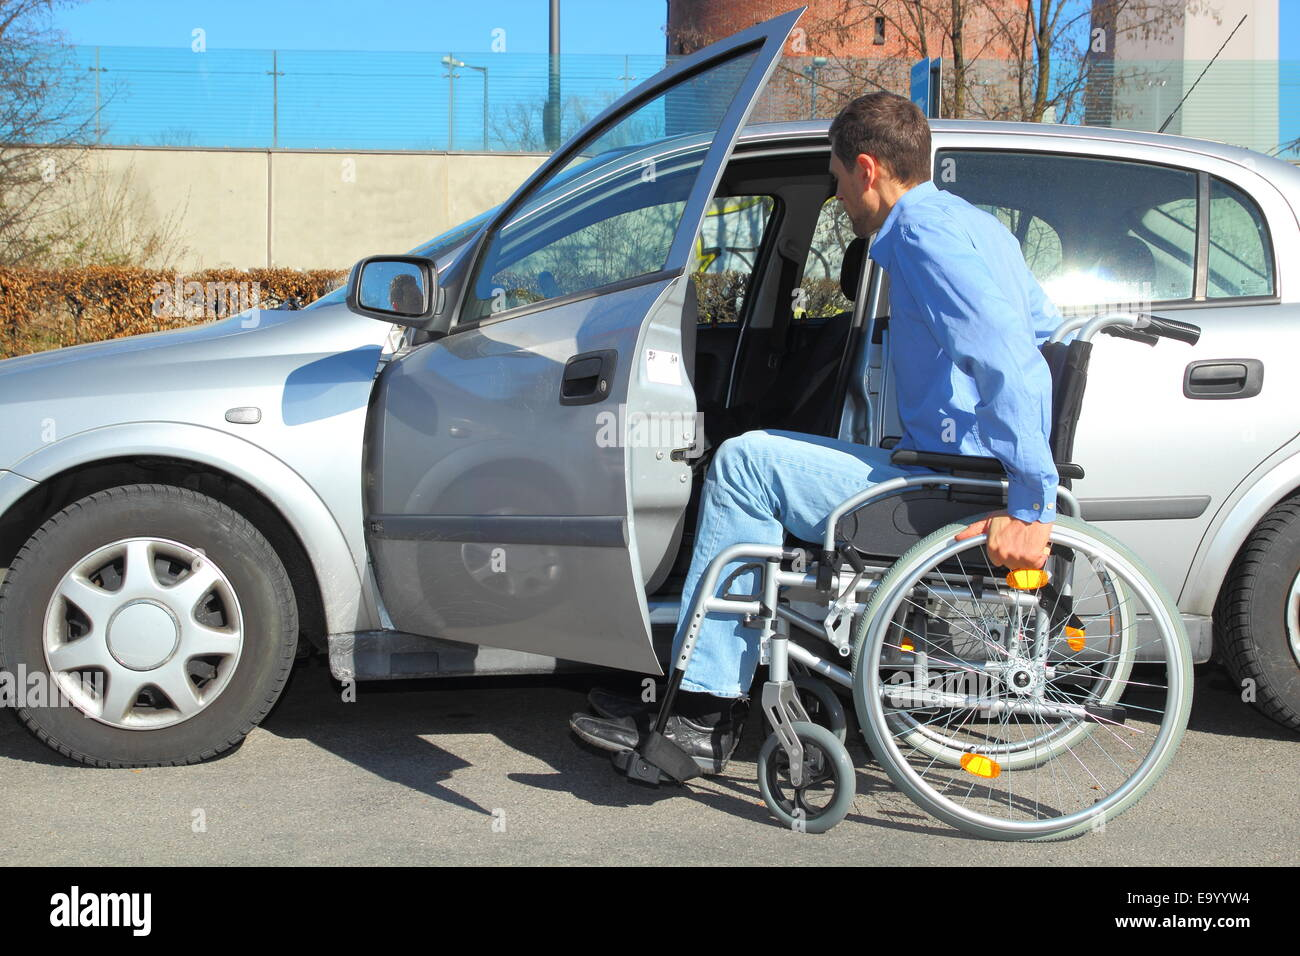 Wheelchair user getting into a car - Stock Image